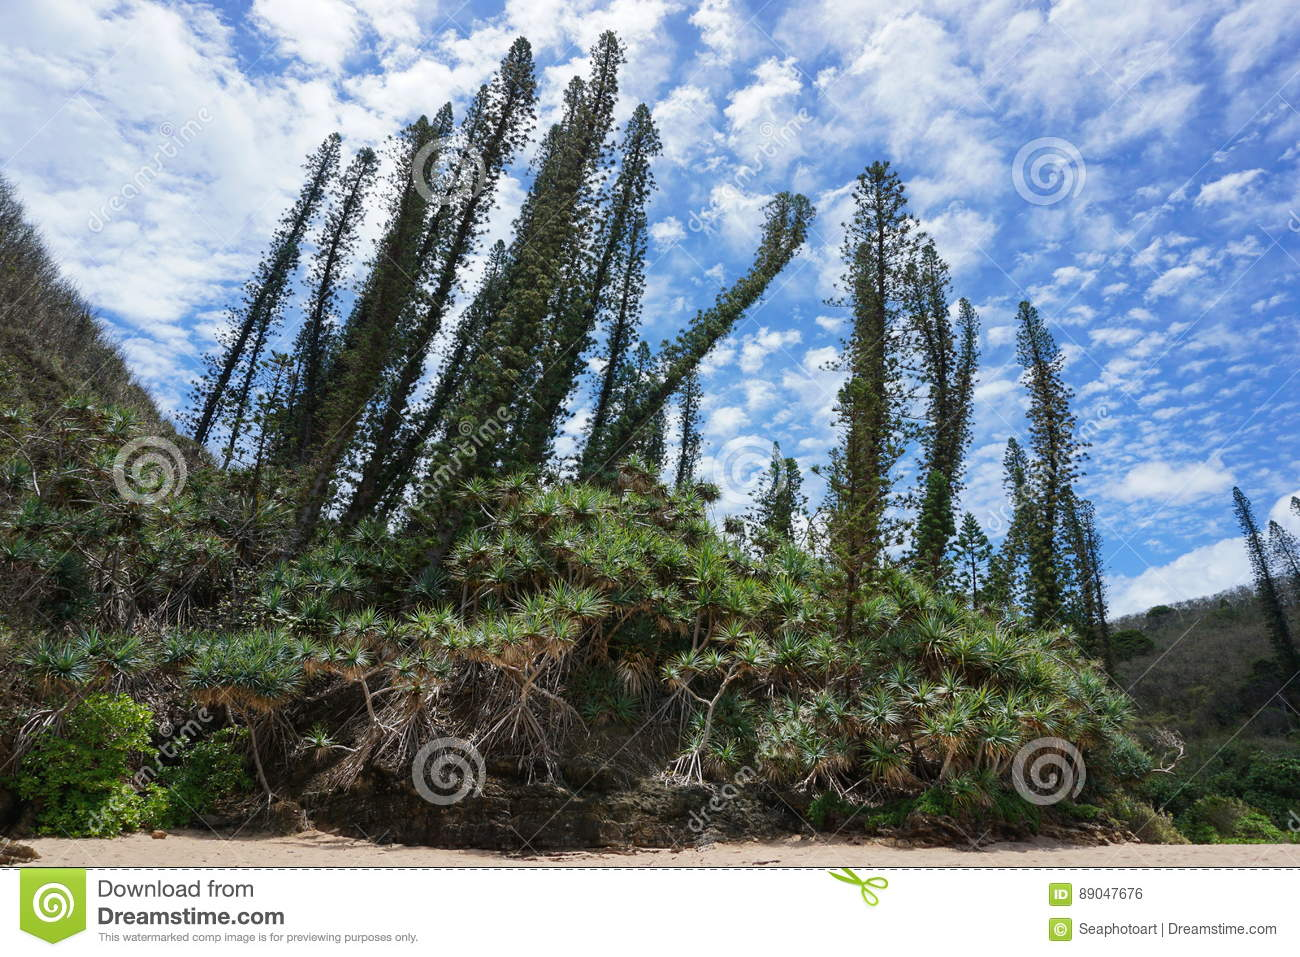 New Caledonia endemic pines with pandanus